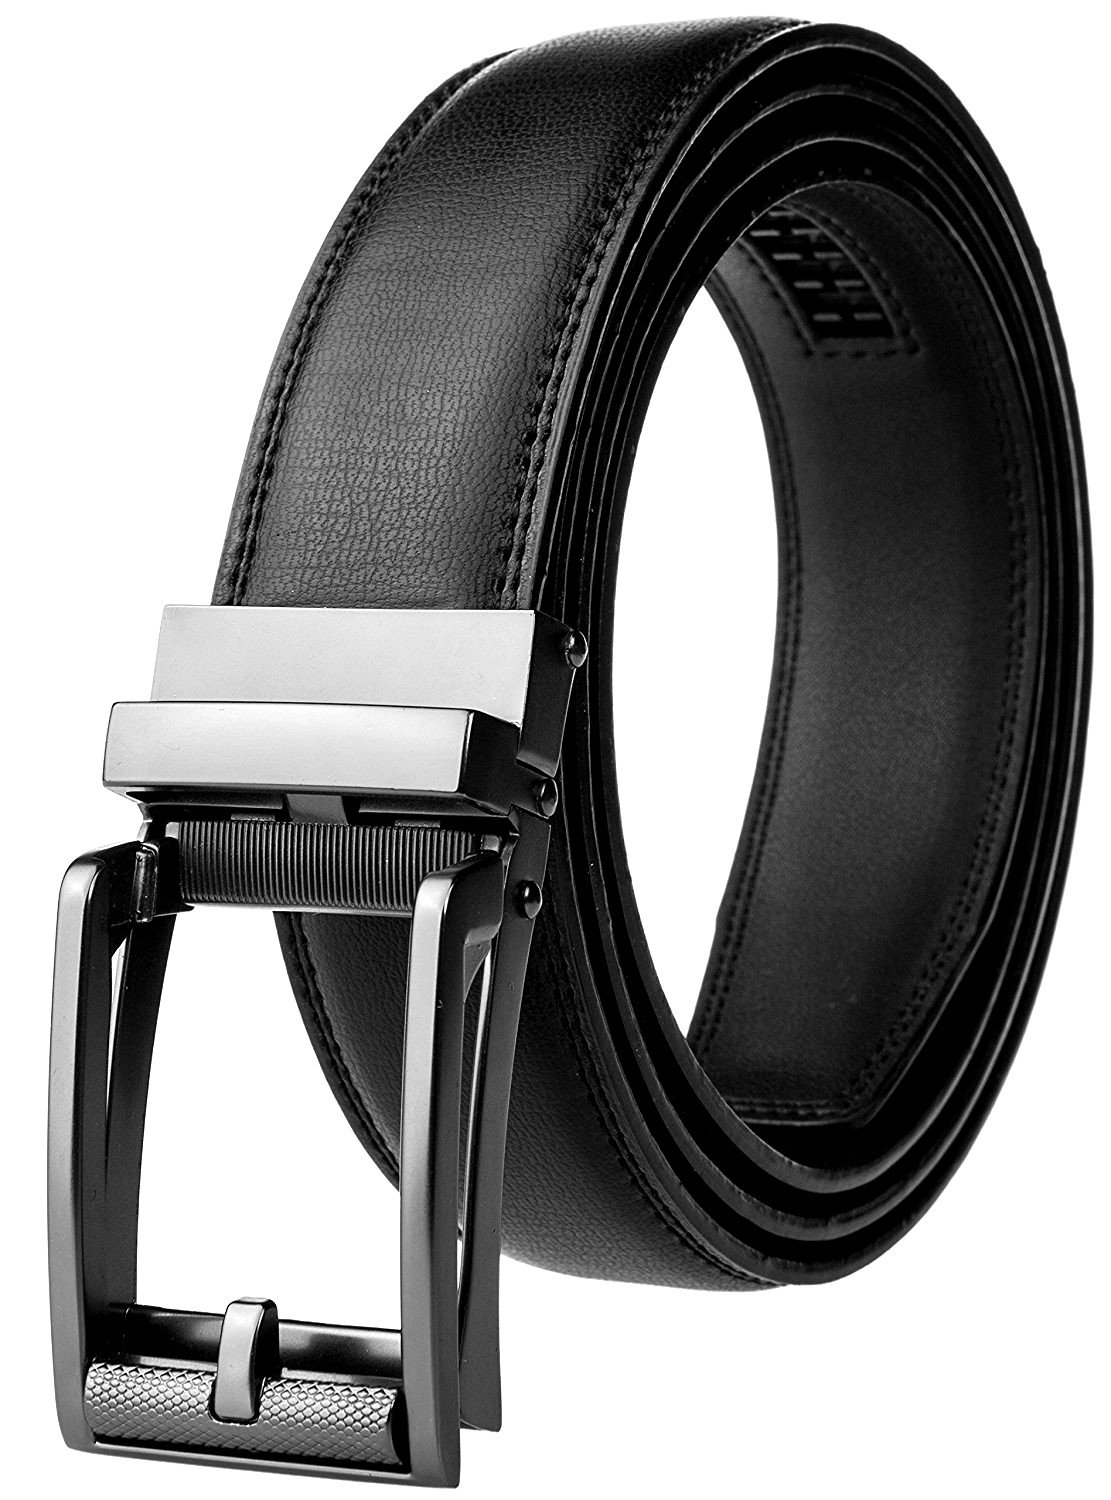 M. Bettino Mens Leather Ratchet Dress Belt With Open Linxx Buckle, Waist Size Up to 46'' with Automatic Buckle